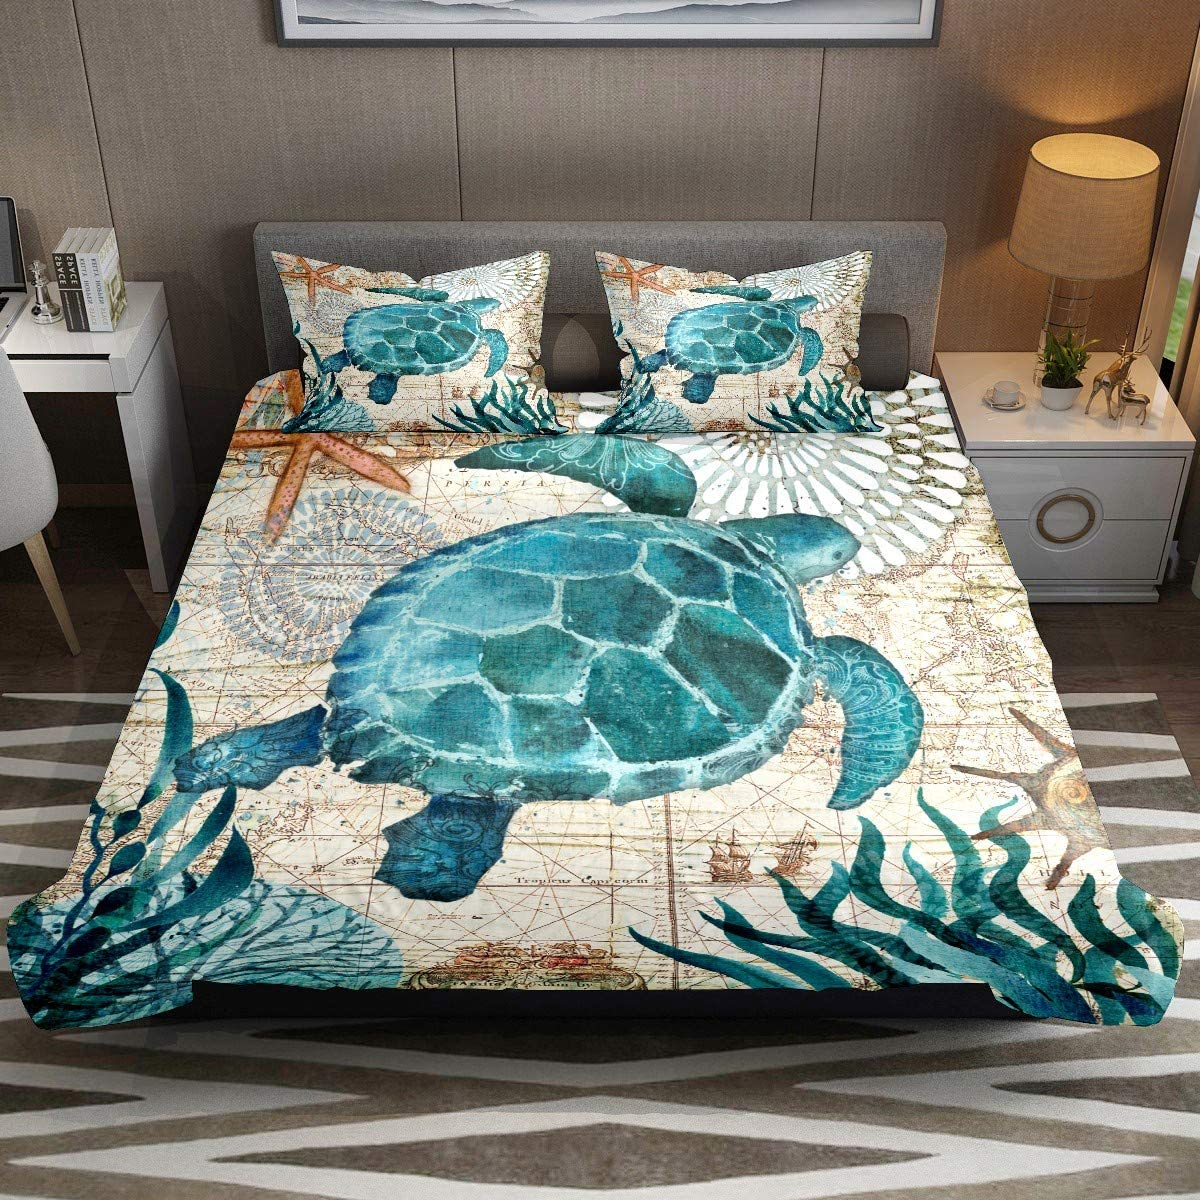 Bedding Duvet Cover King Classic Sea Turtle Comforter Cover Set 3 Piece Ultra Soft bedspreads Sets Hotal Collections Microfiber - 1 Quilt Cover and 2 Pillowcases